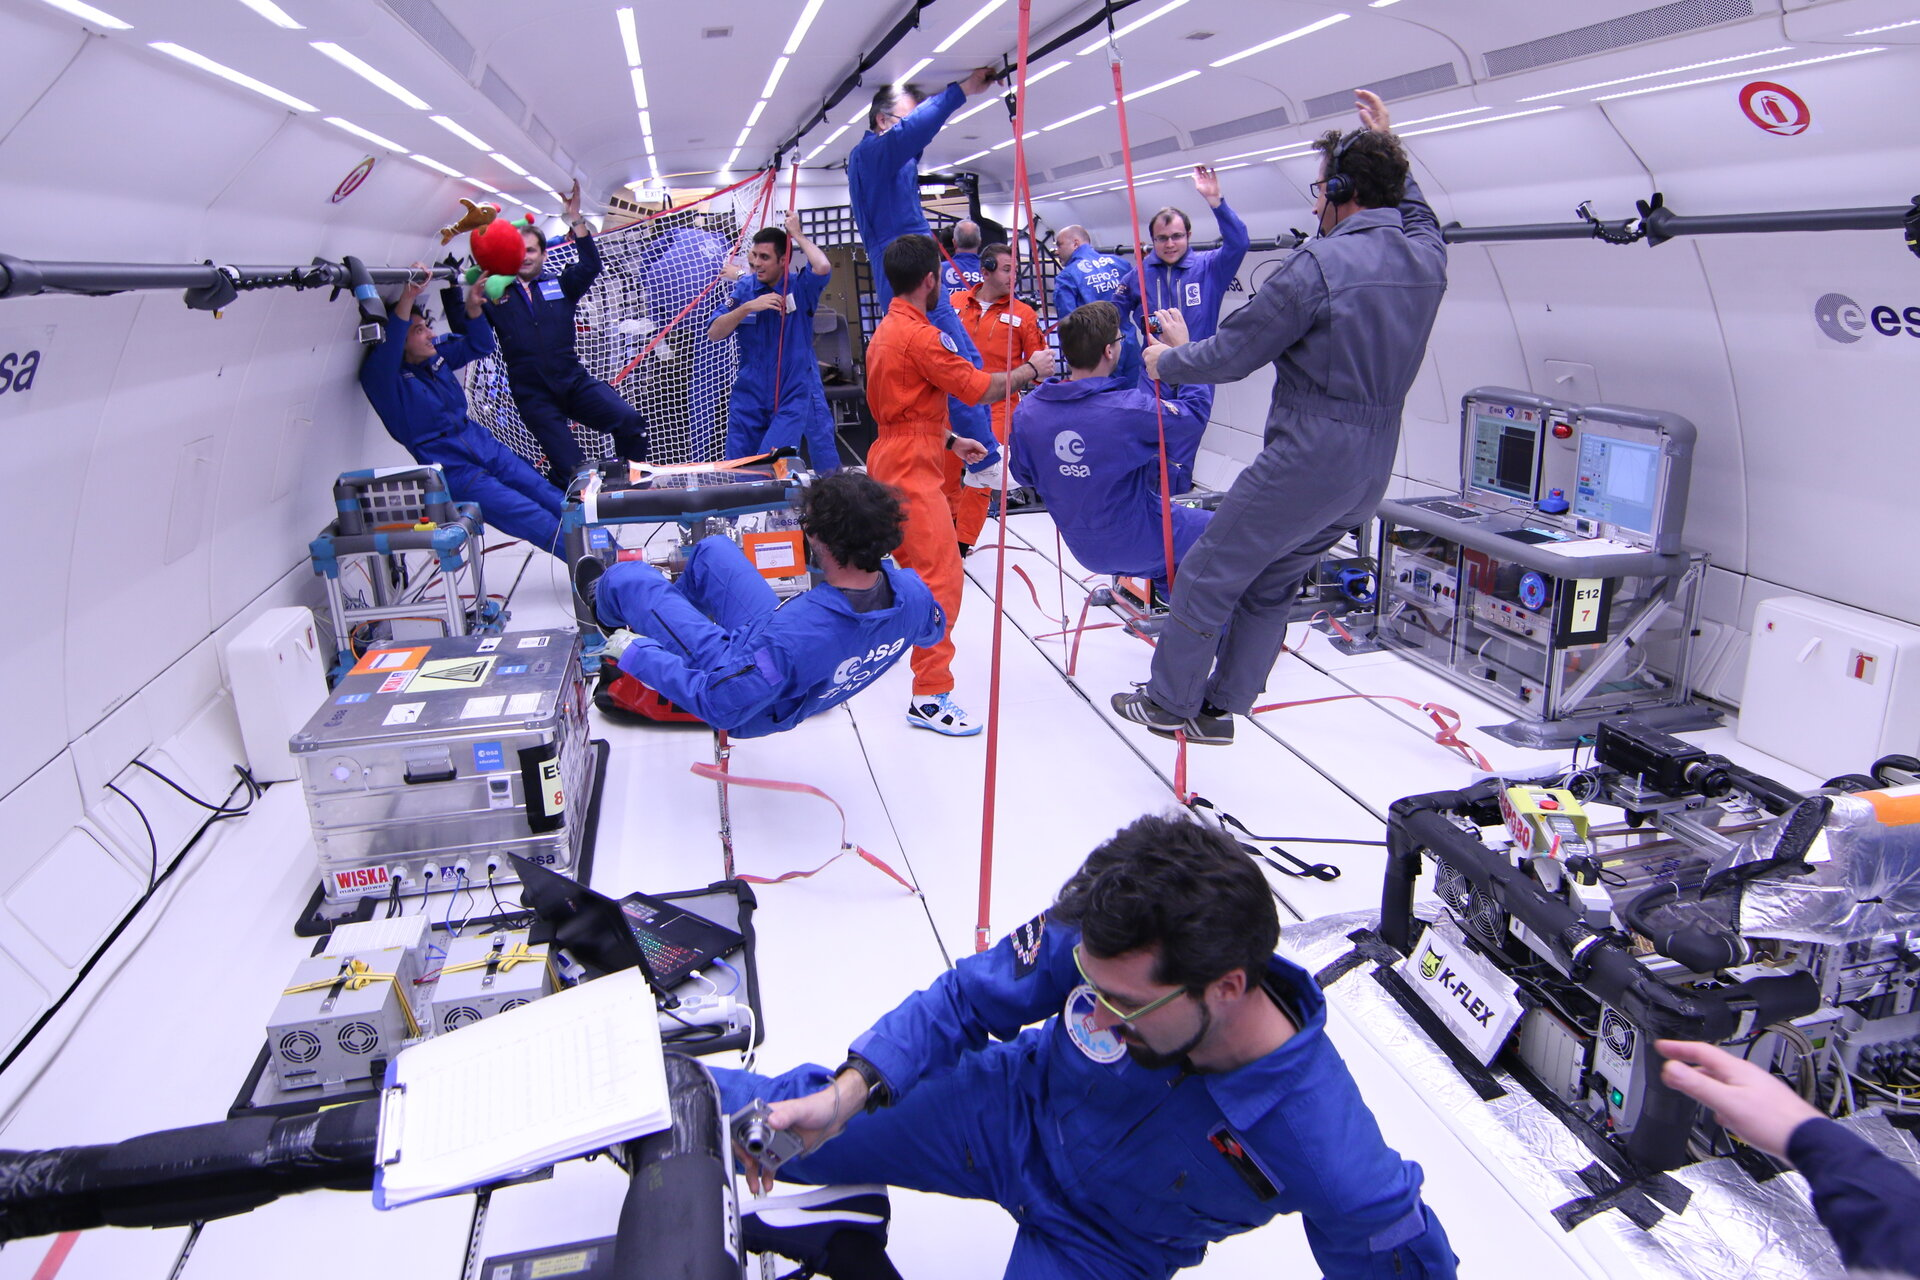 Esa Student Experiments On Parabolic Flights Performed Successfully